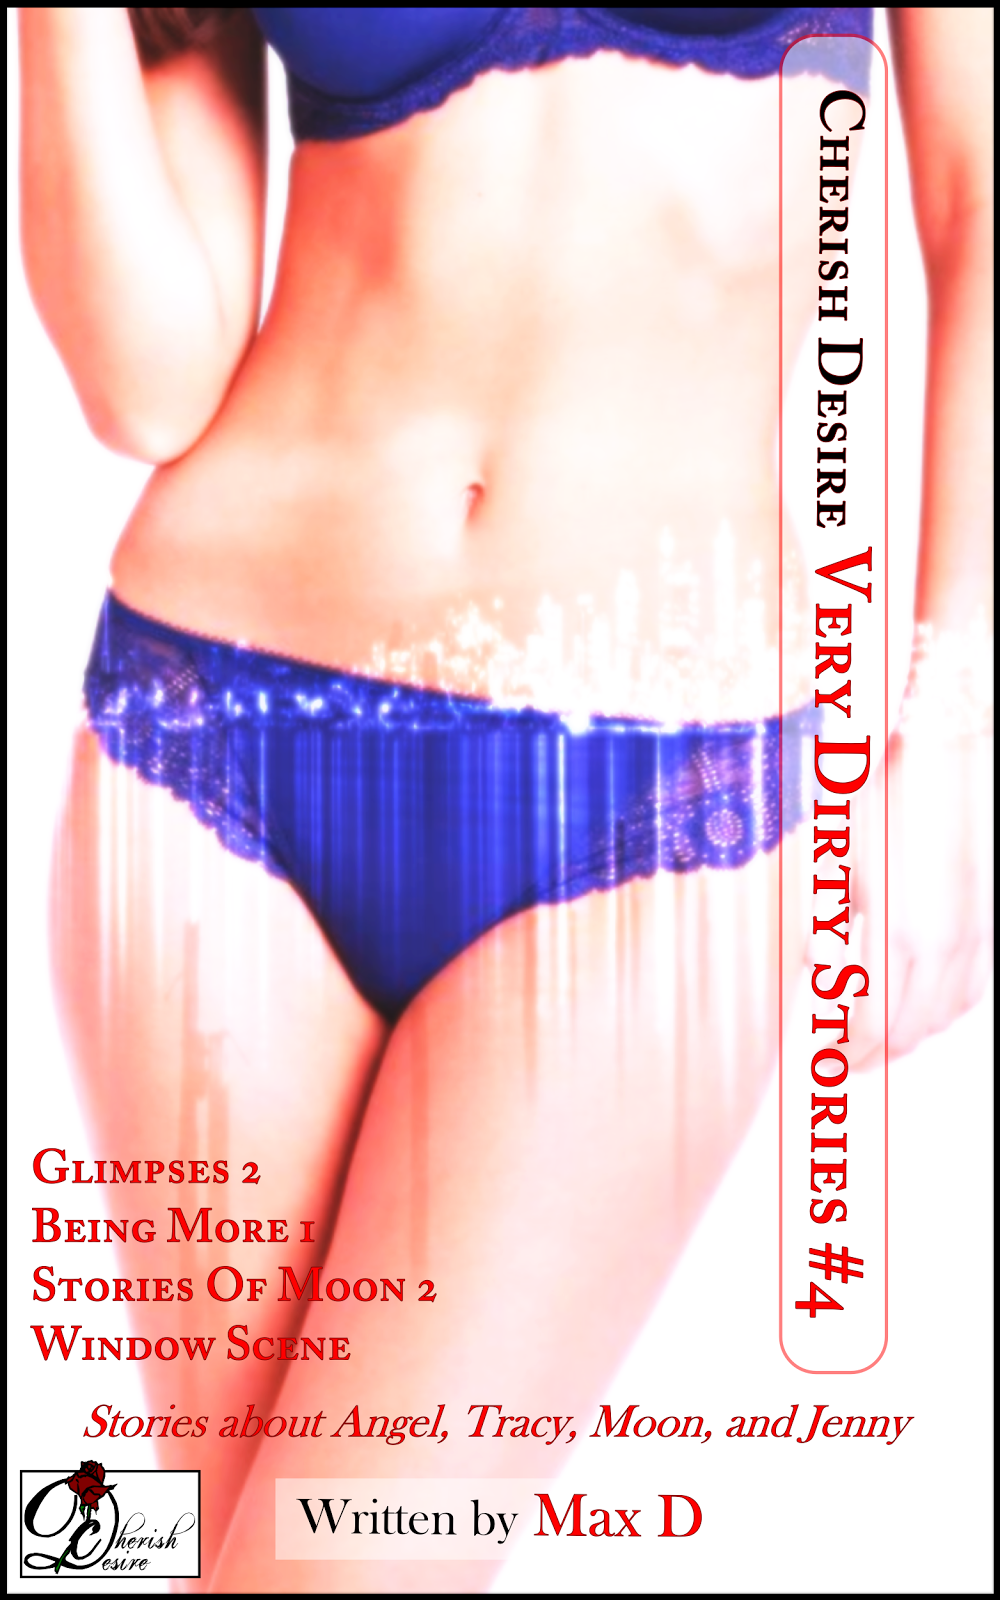 Cherish Desire: Very Dirty Stories #4, Max D, erotica